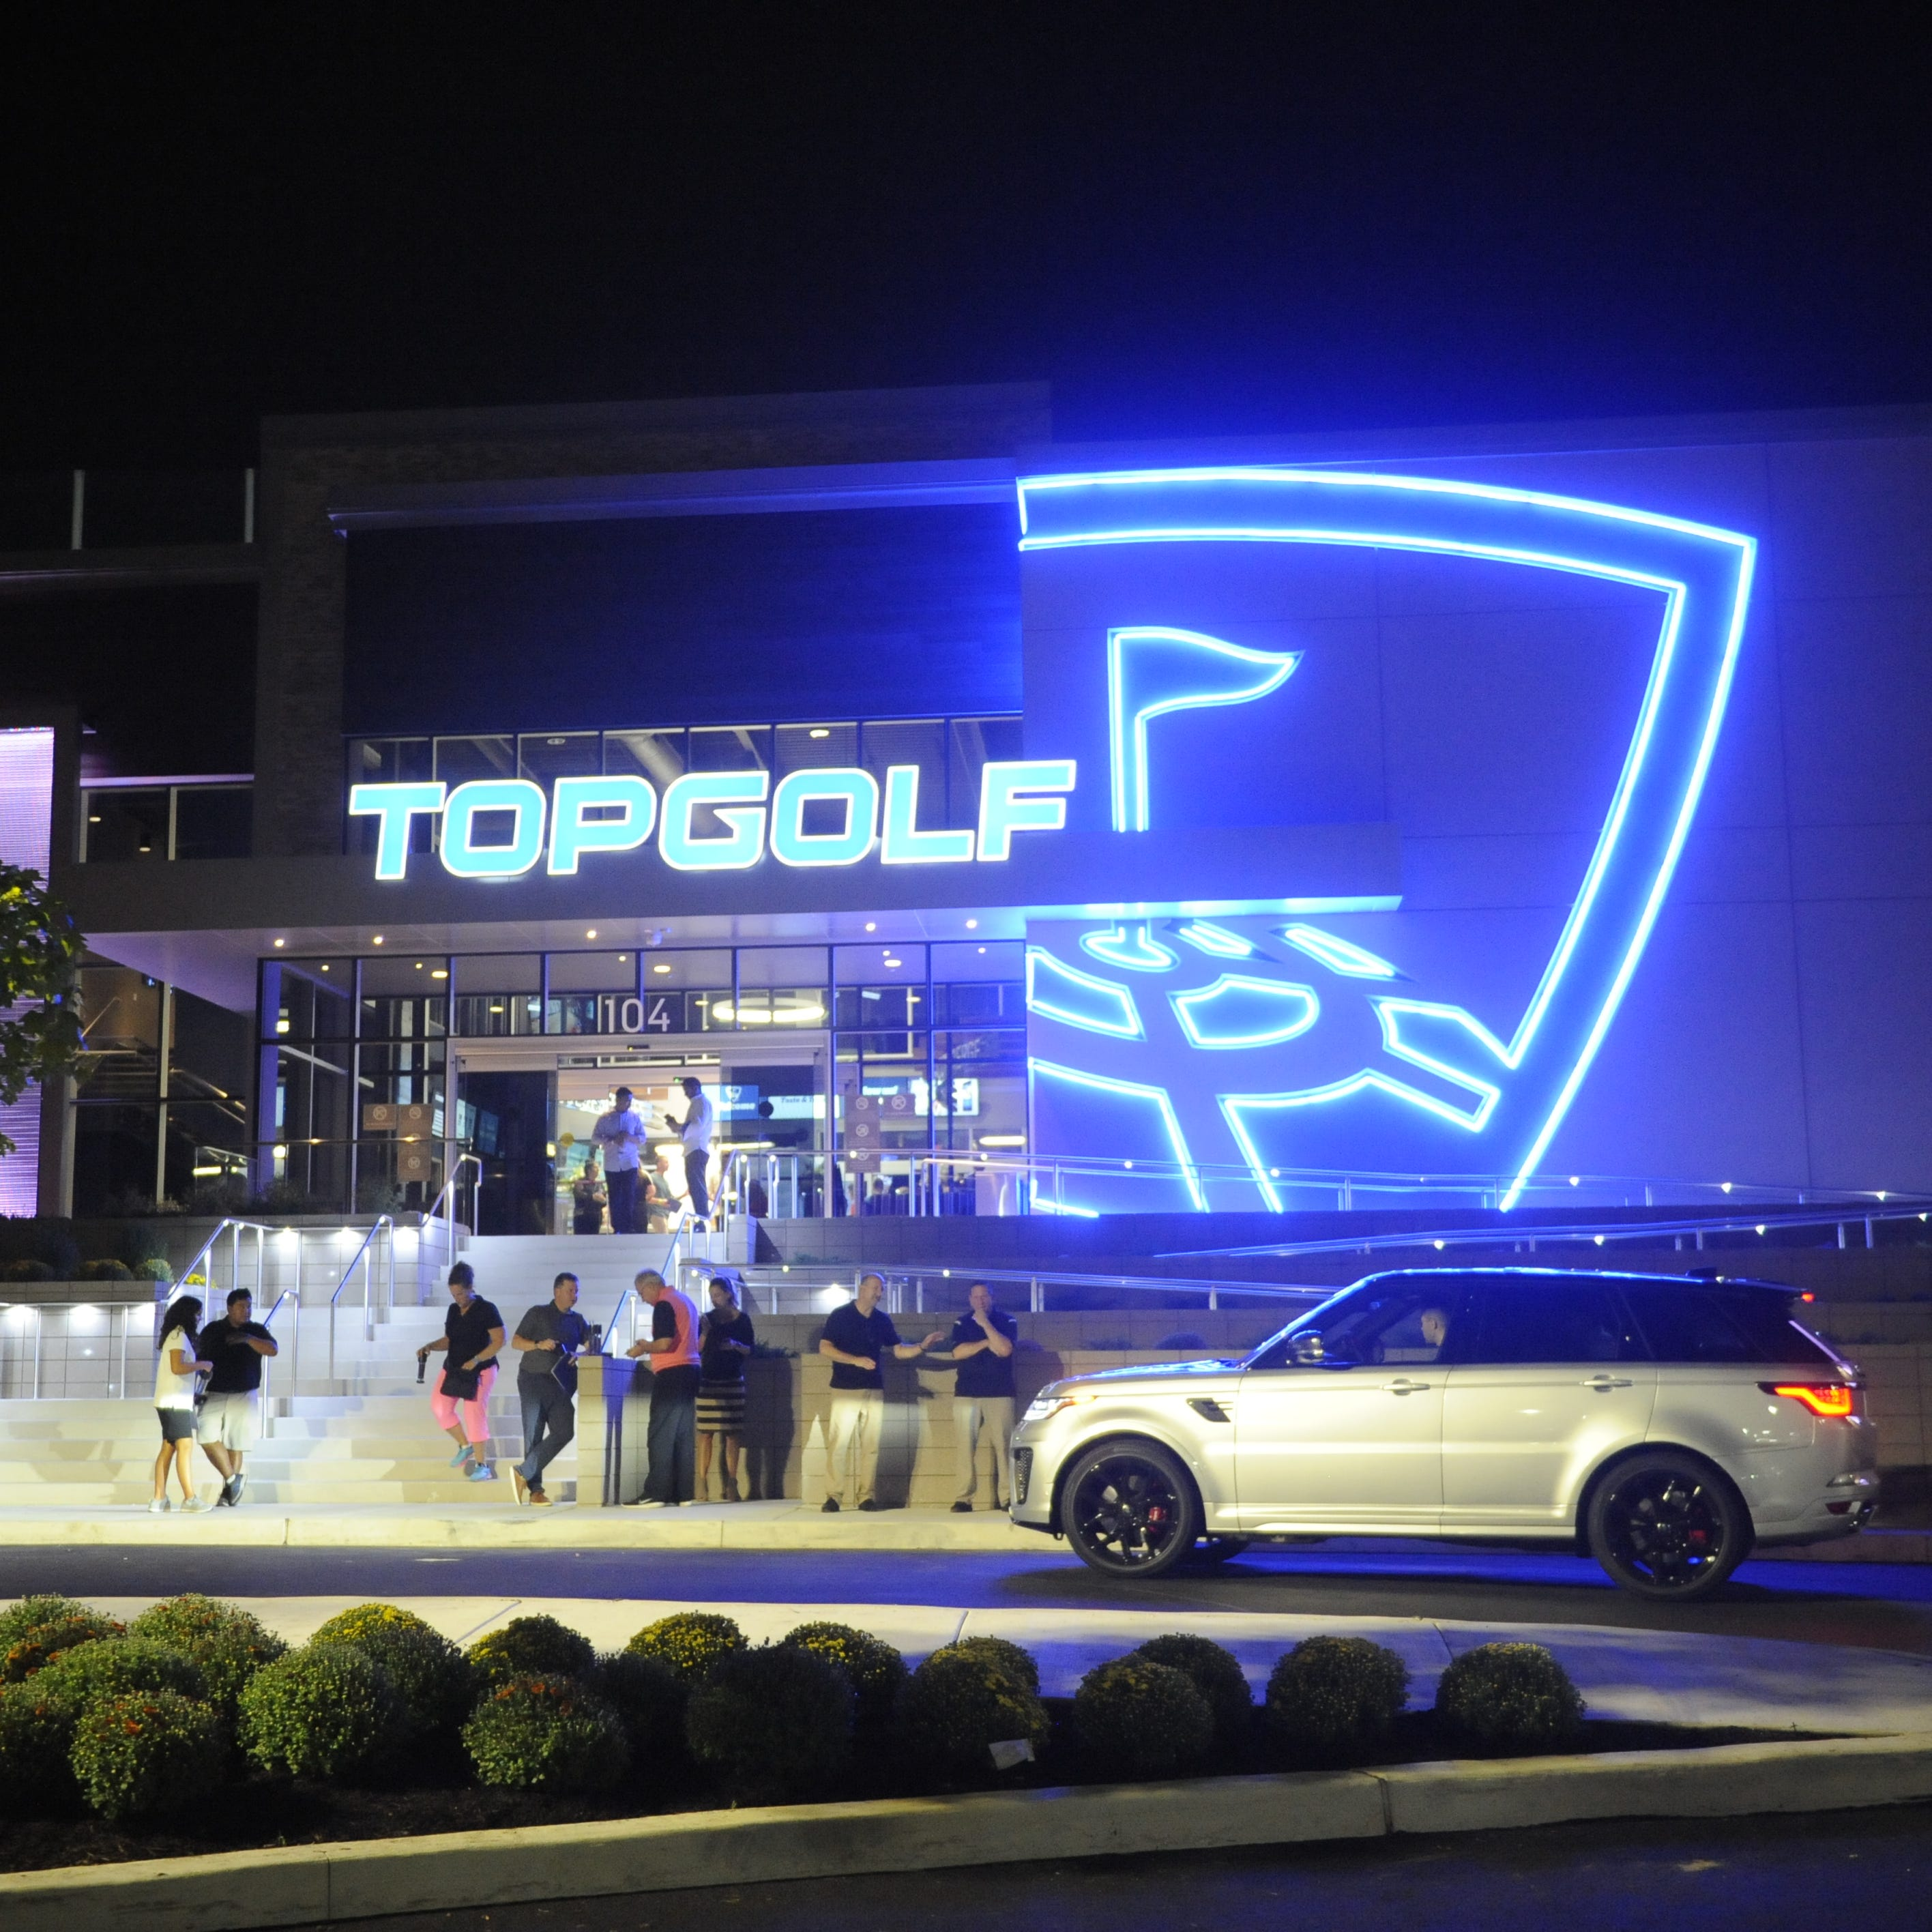 PHOTOS: Take a sneak peek at Topgolf in Mount Laurel